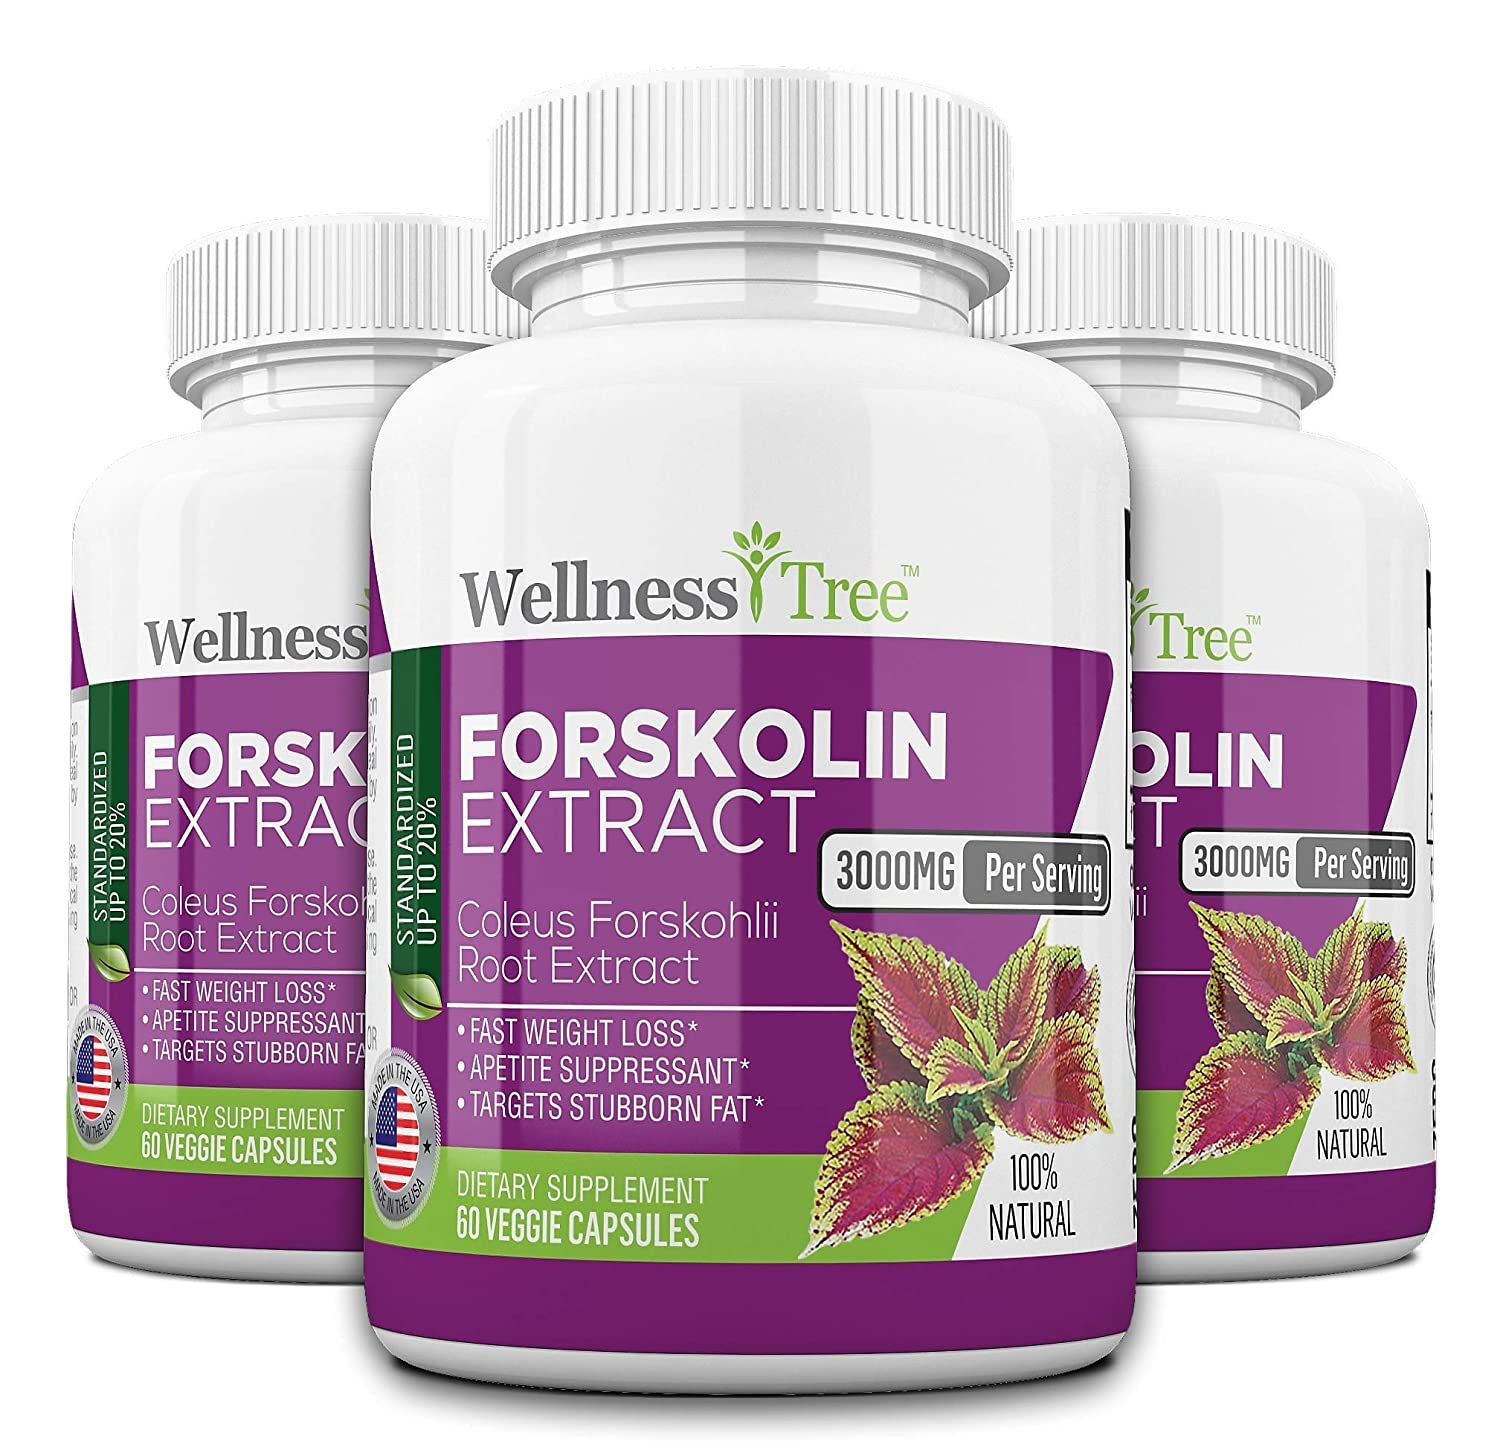 Pure Forskolin 3000mg Max Strength – Forskolin Extract for Weight Loss – Premium Appetite Suppressant, Metabolism Booster, Carb Blocker Fat Burner for Men and Women – 3 Pack